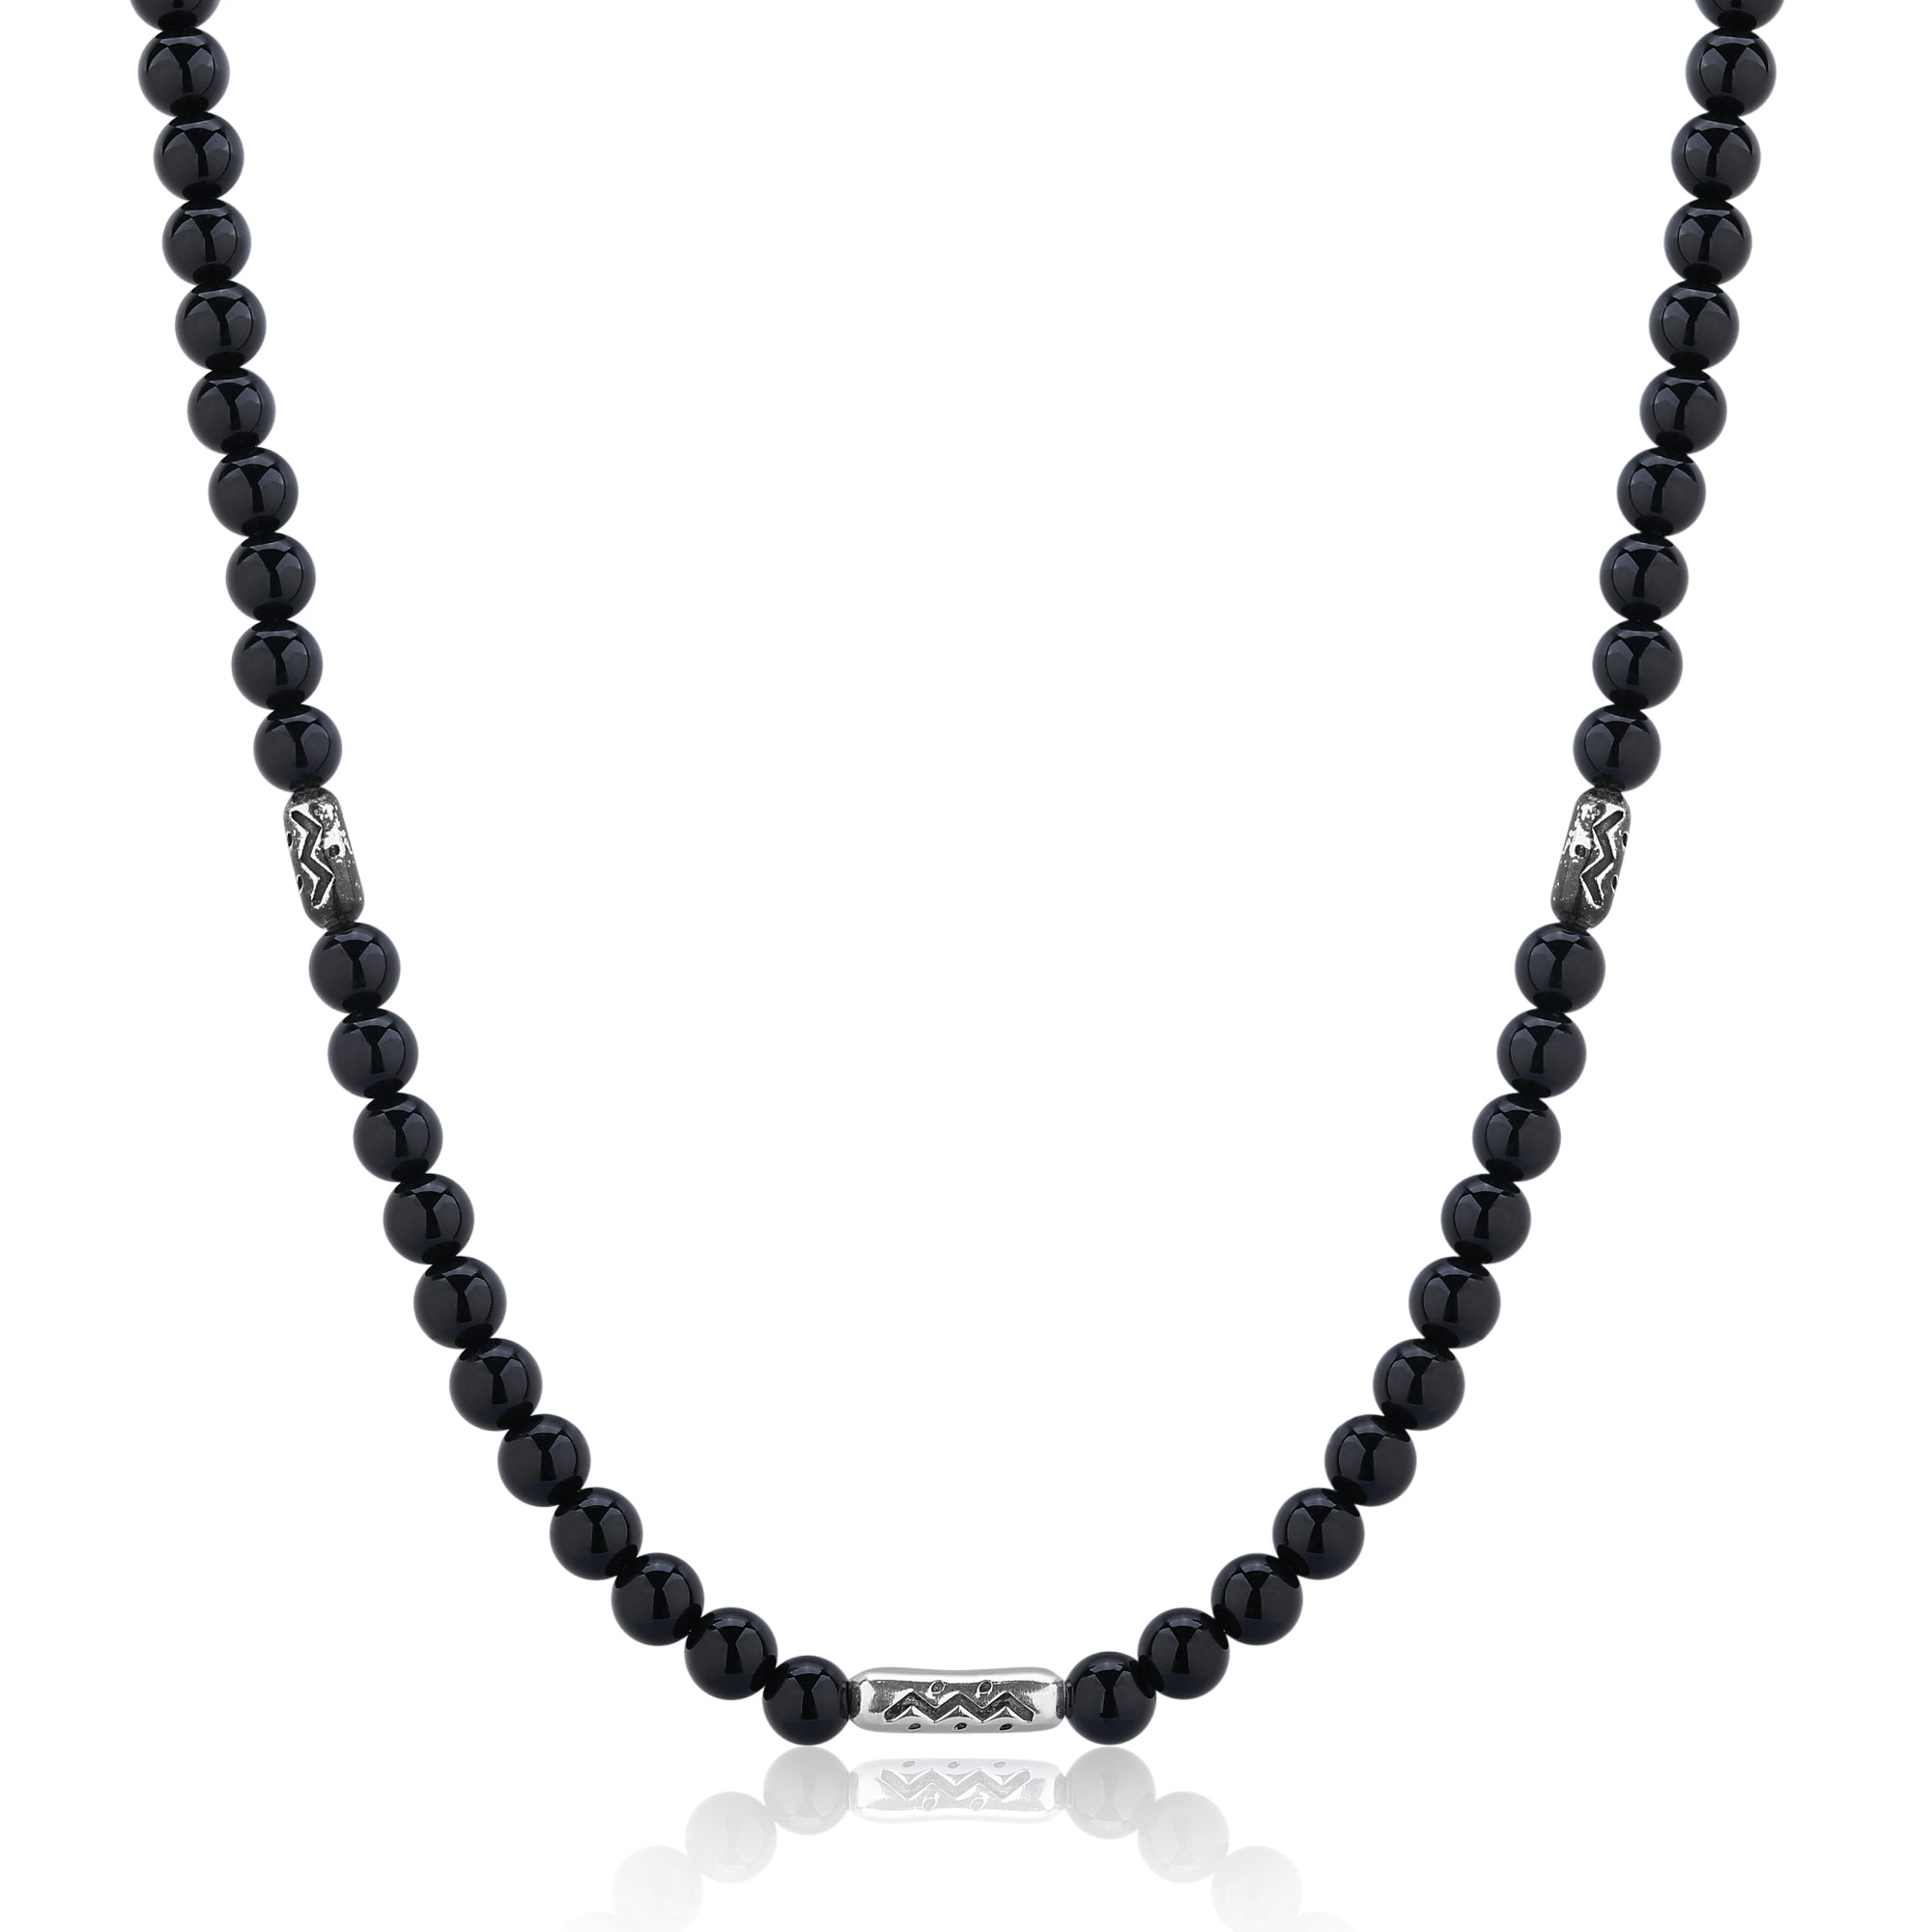 Black Agate and Silver Beaded Necklace